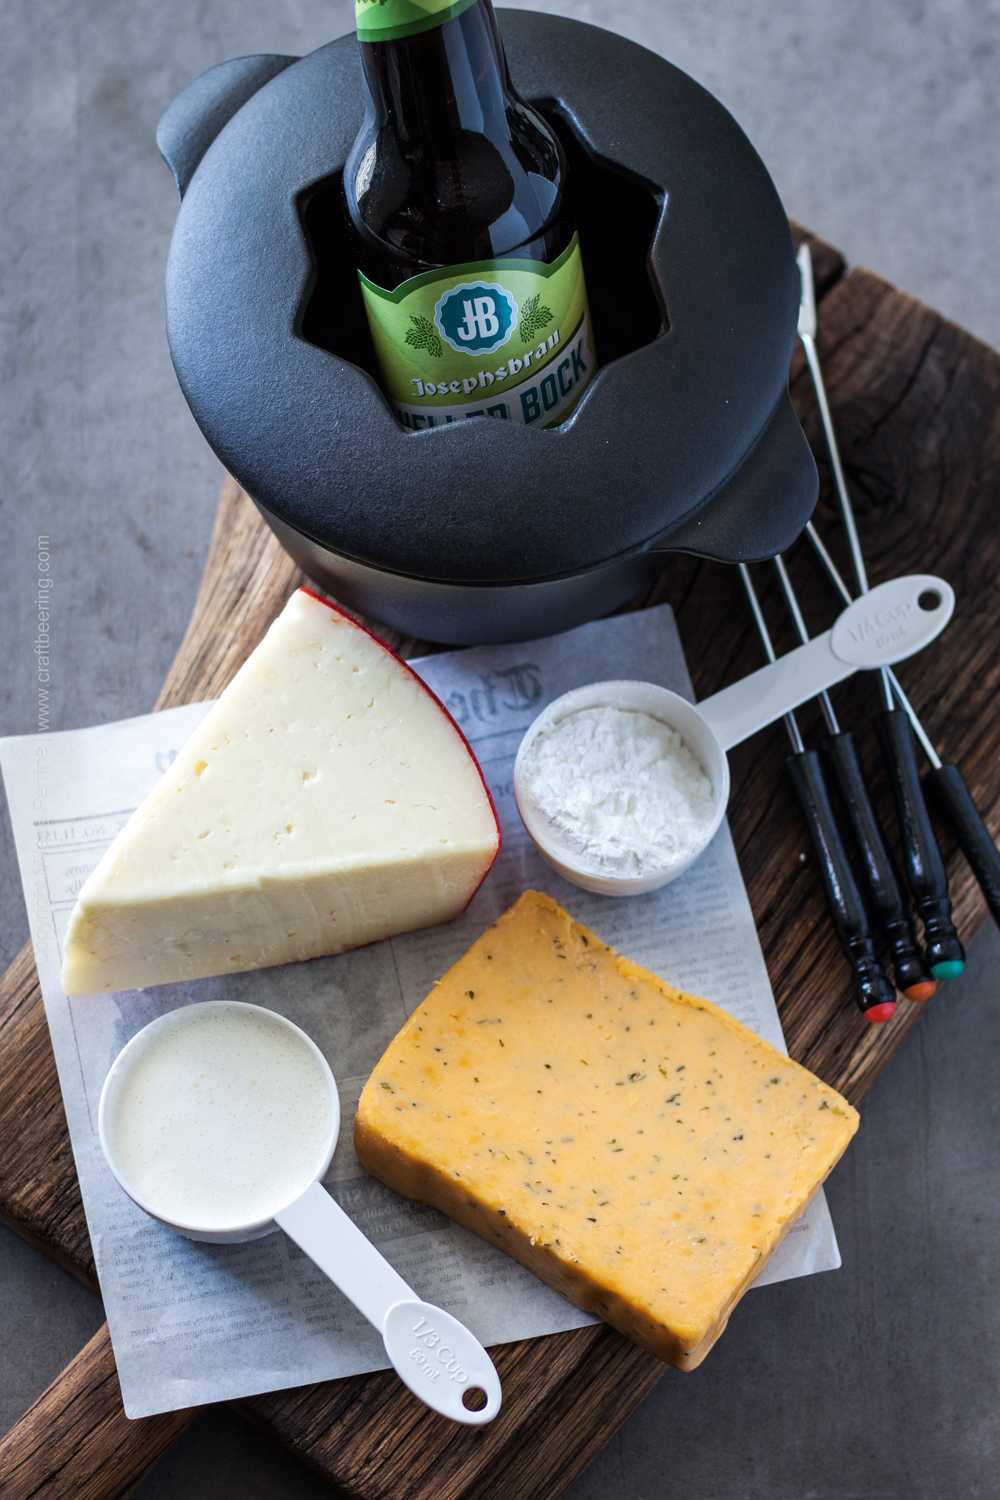 Beer cheese fondue simple ingredients - melting cheeses, malty lager, flour an heavy cream.